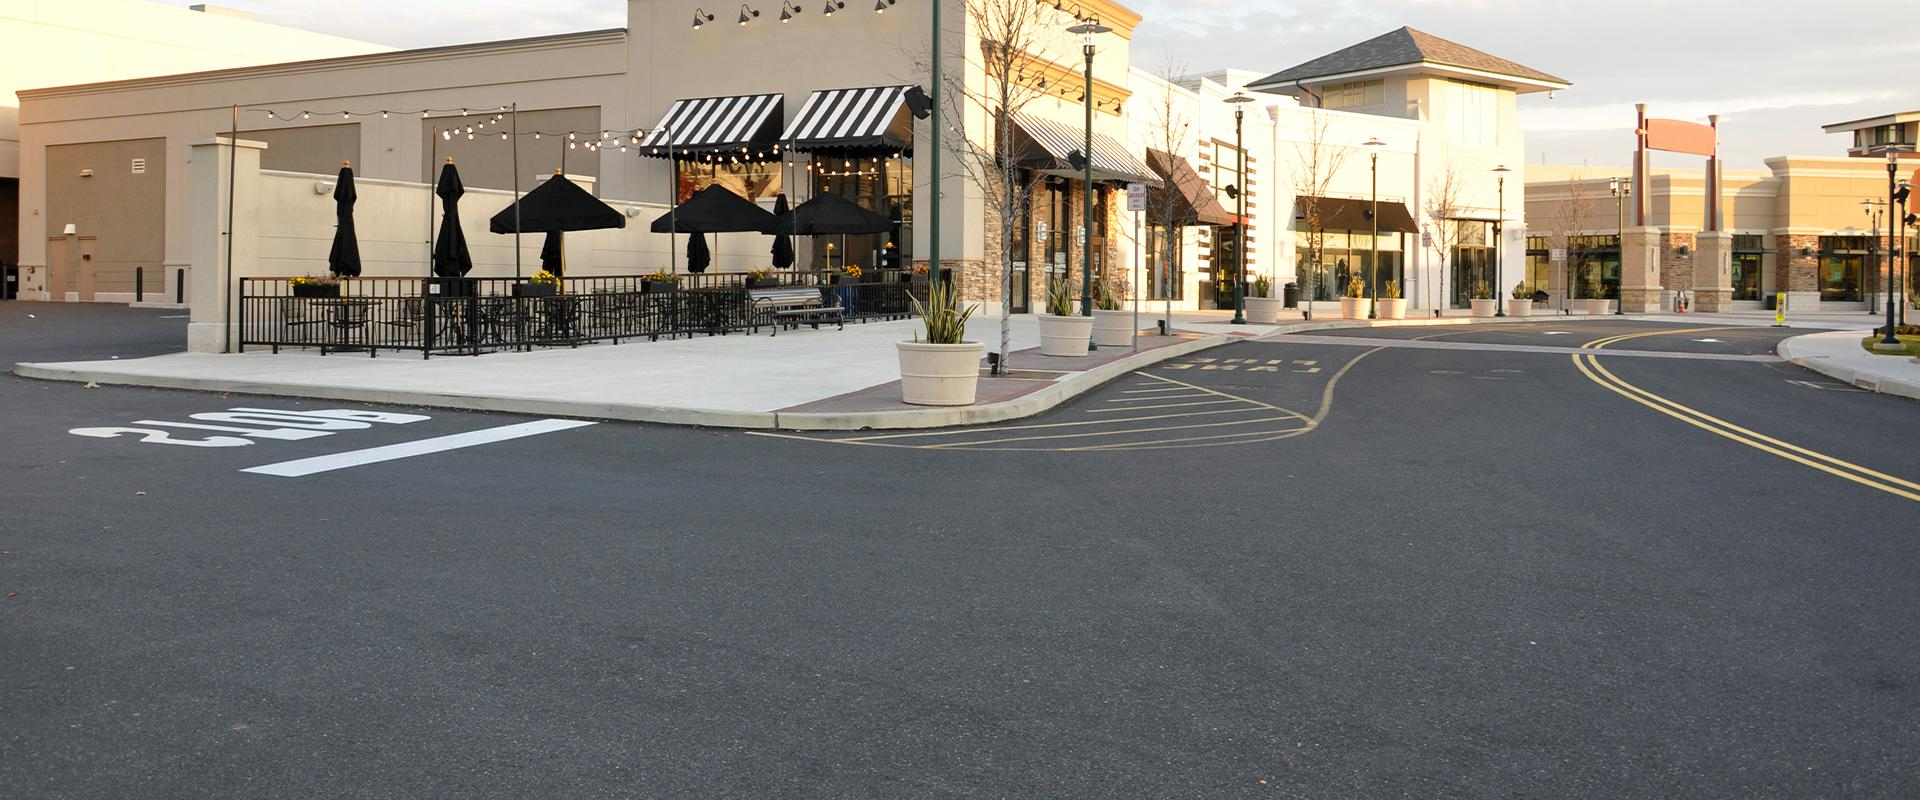 commercial buildings in plano texas